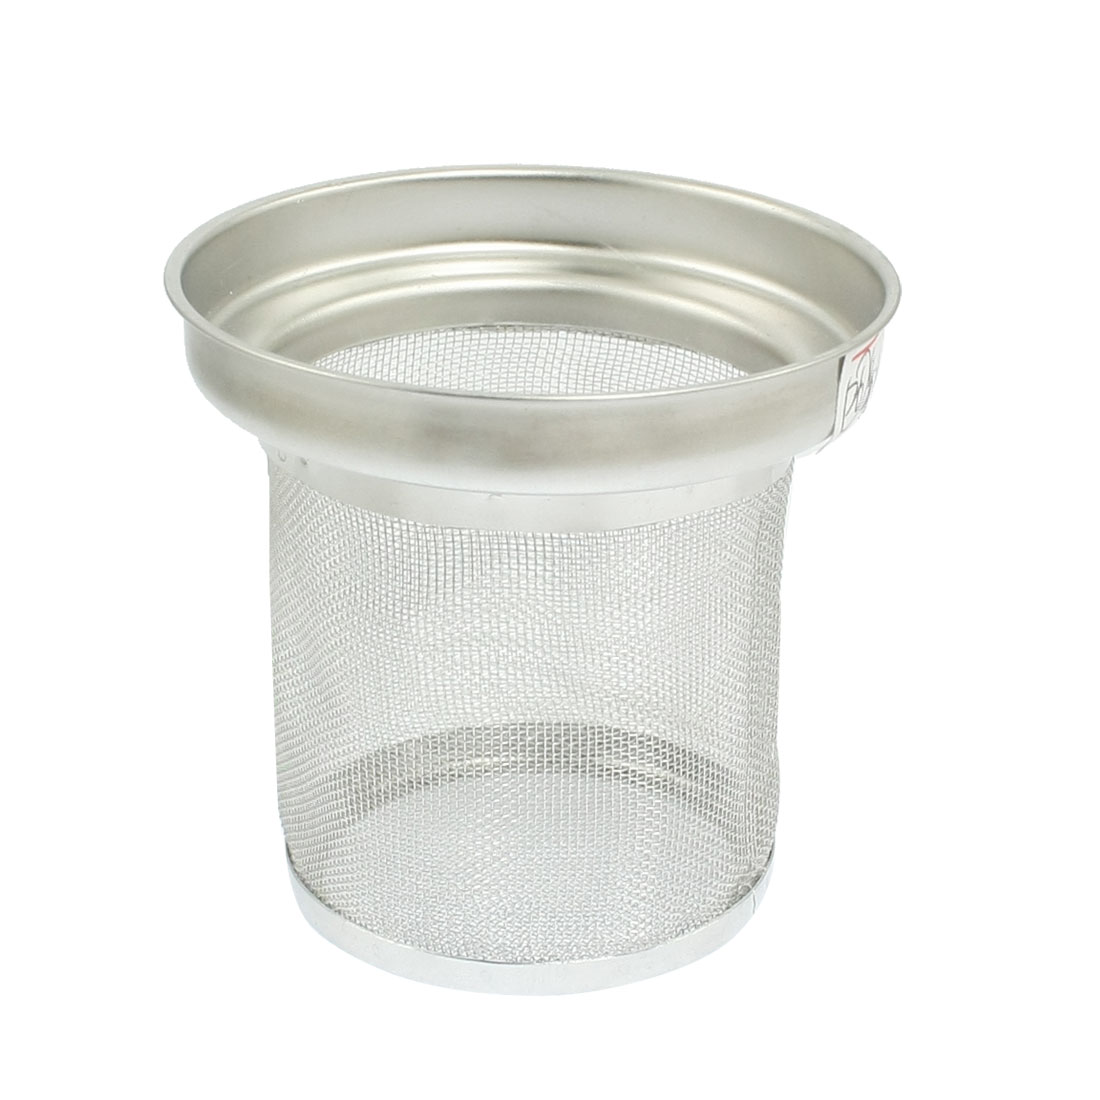 "2.2"" Deep Siver Tone Cylinder Shape Stainless Steel Tea Mesh Strainer"